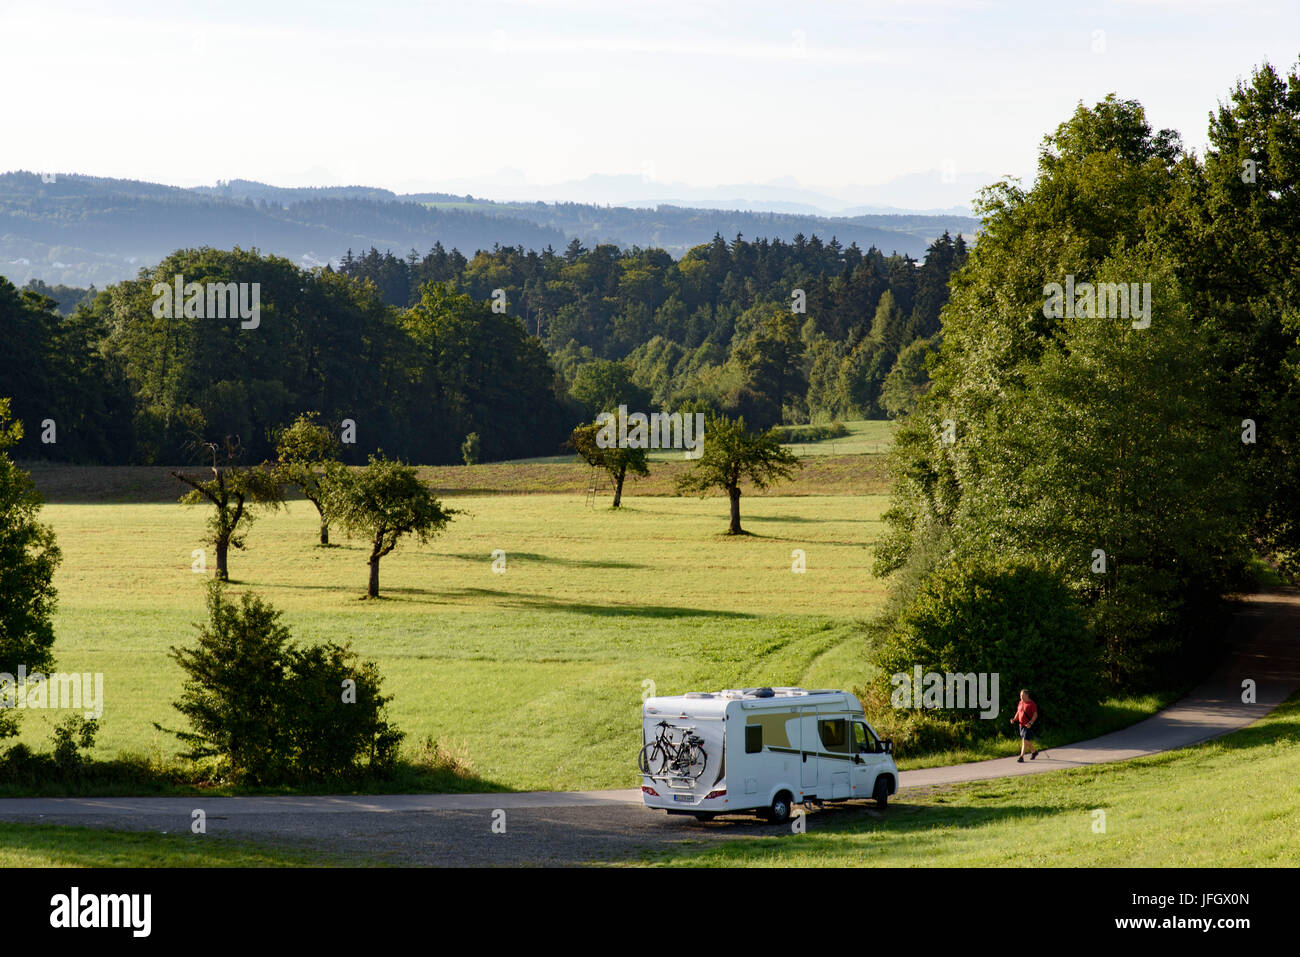 Camper, a meadow with scattered fruit trees, Ravensburg, Baden-Wurttemberg, Germany - Stock Image